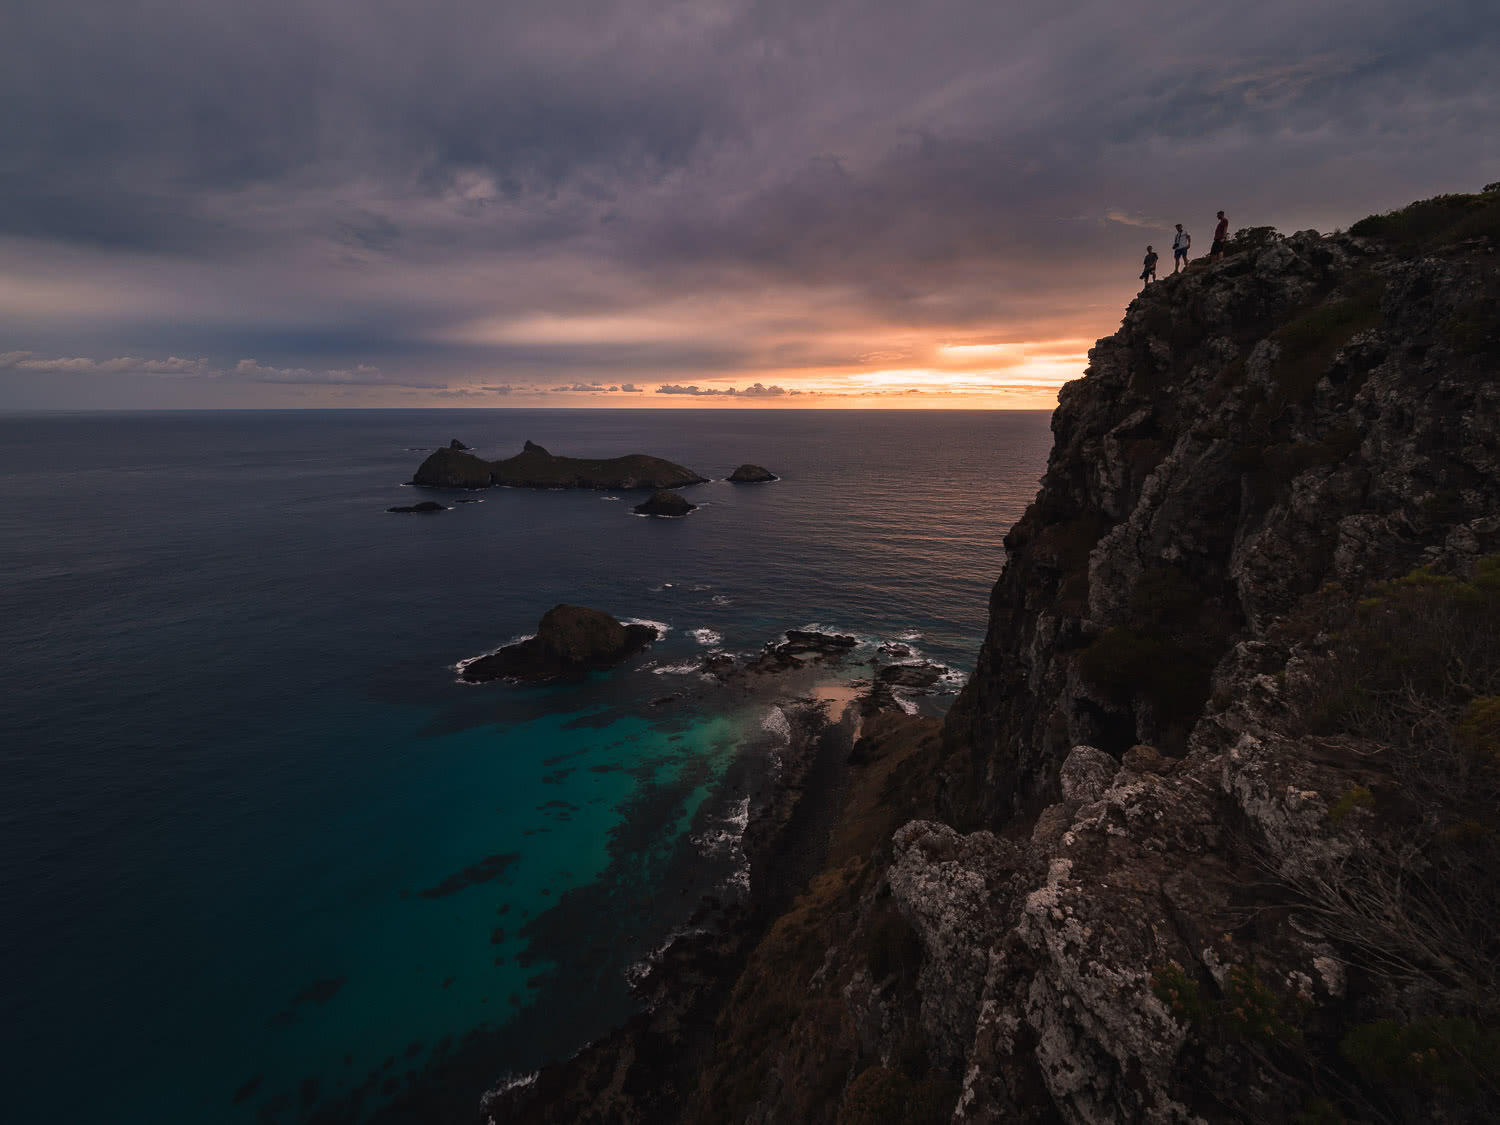 Lord Howe Island's Photography Hot Spots, Matt Horspool, islands, sunset, horizon, ocean, water, turquoise, sunset, clouds